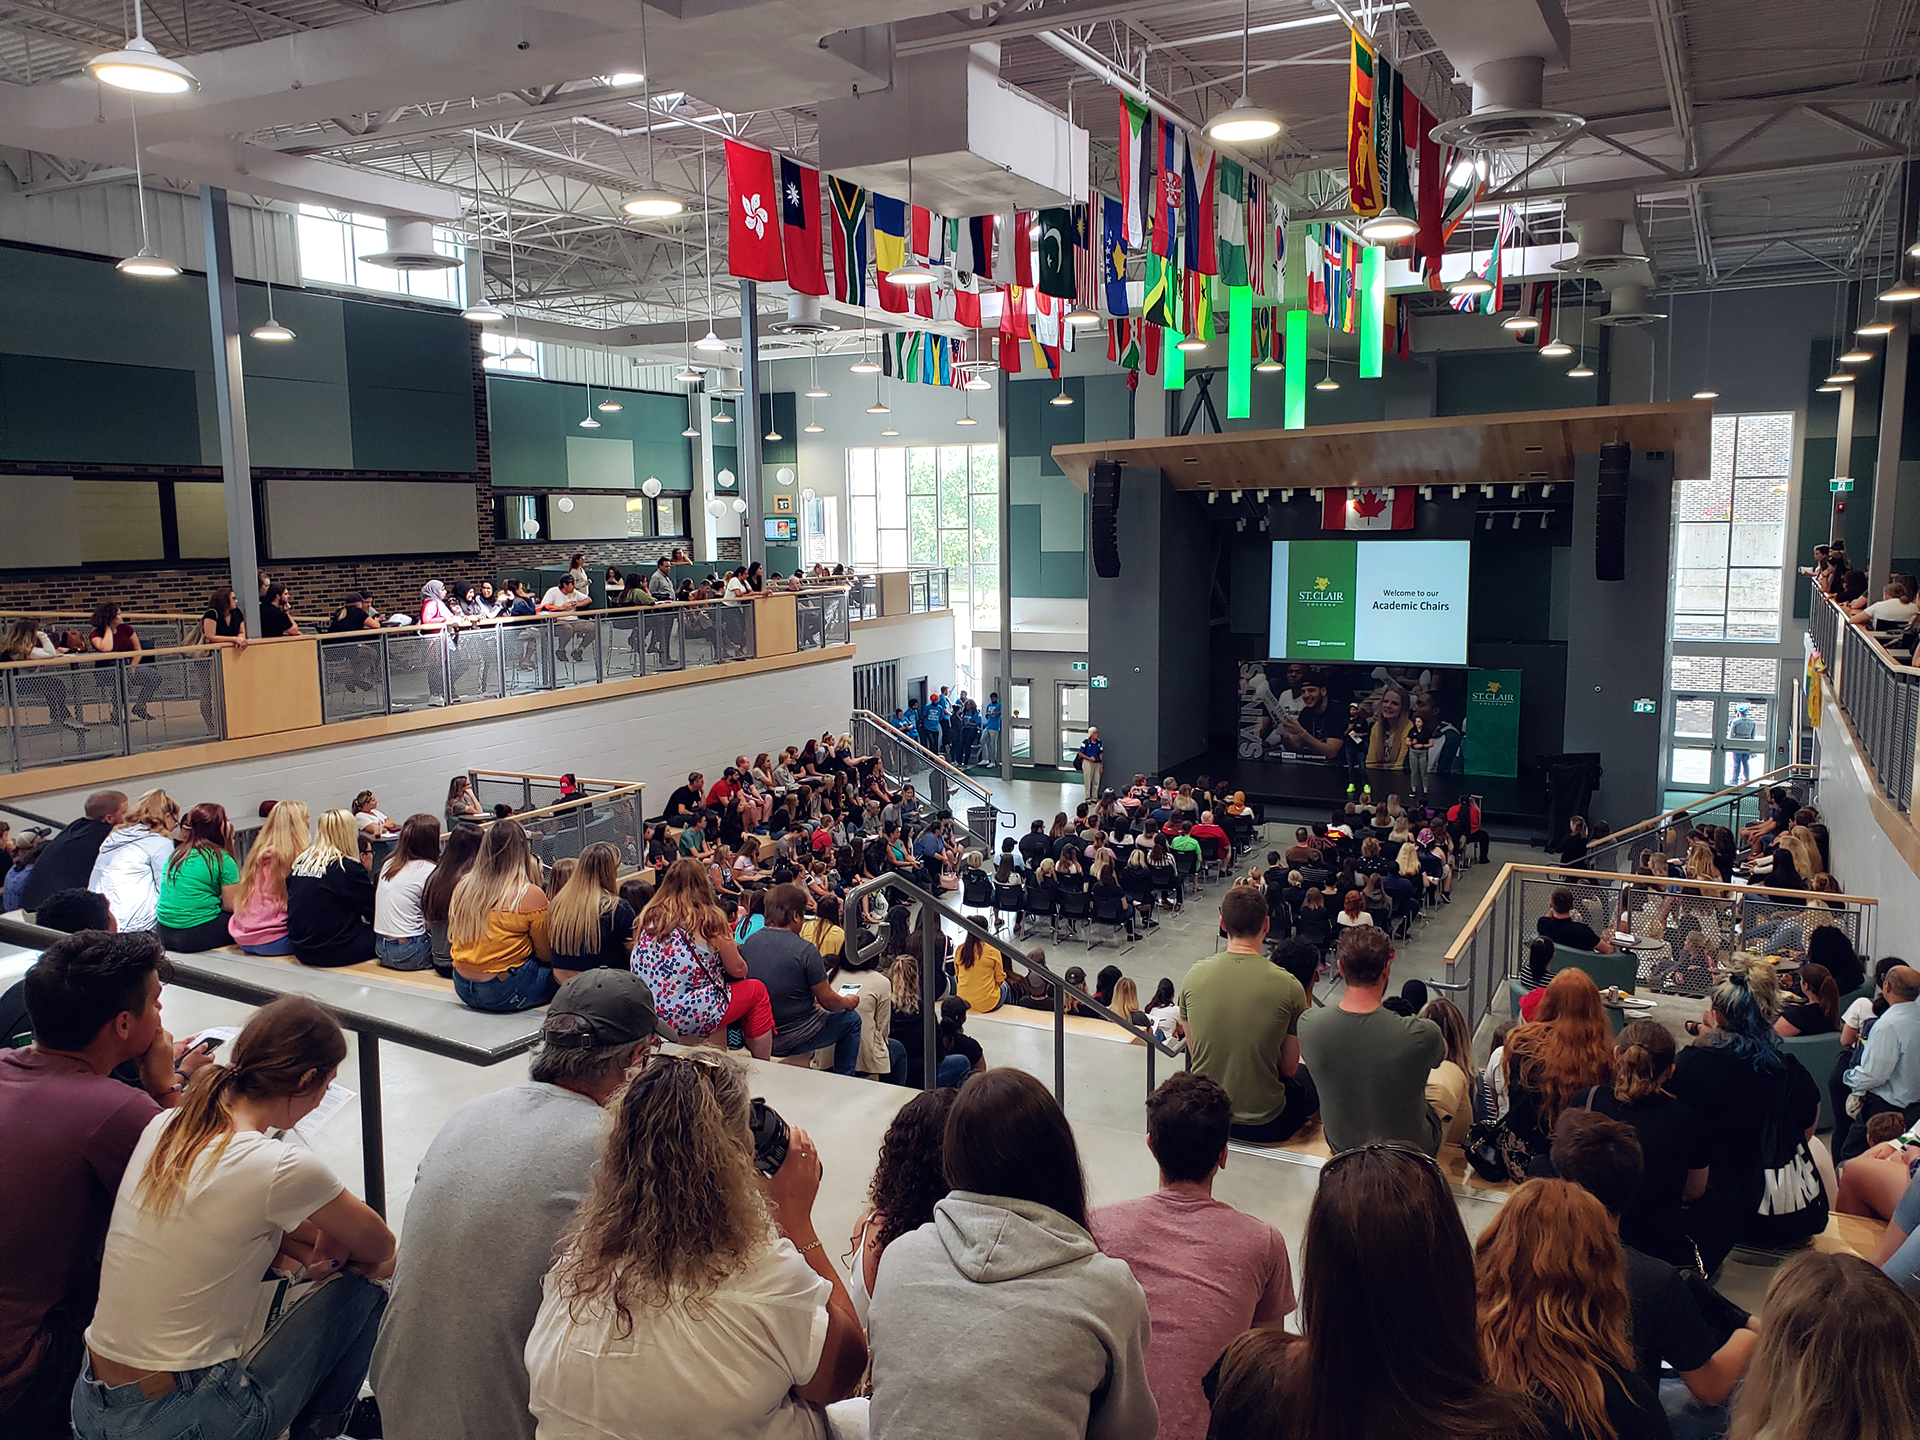 St Clair College Enrolment Stays Strong St Clair College